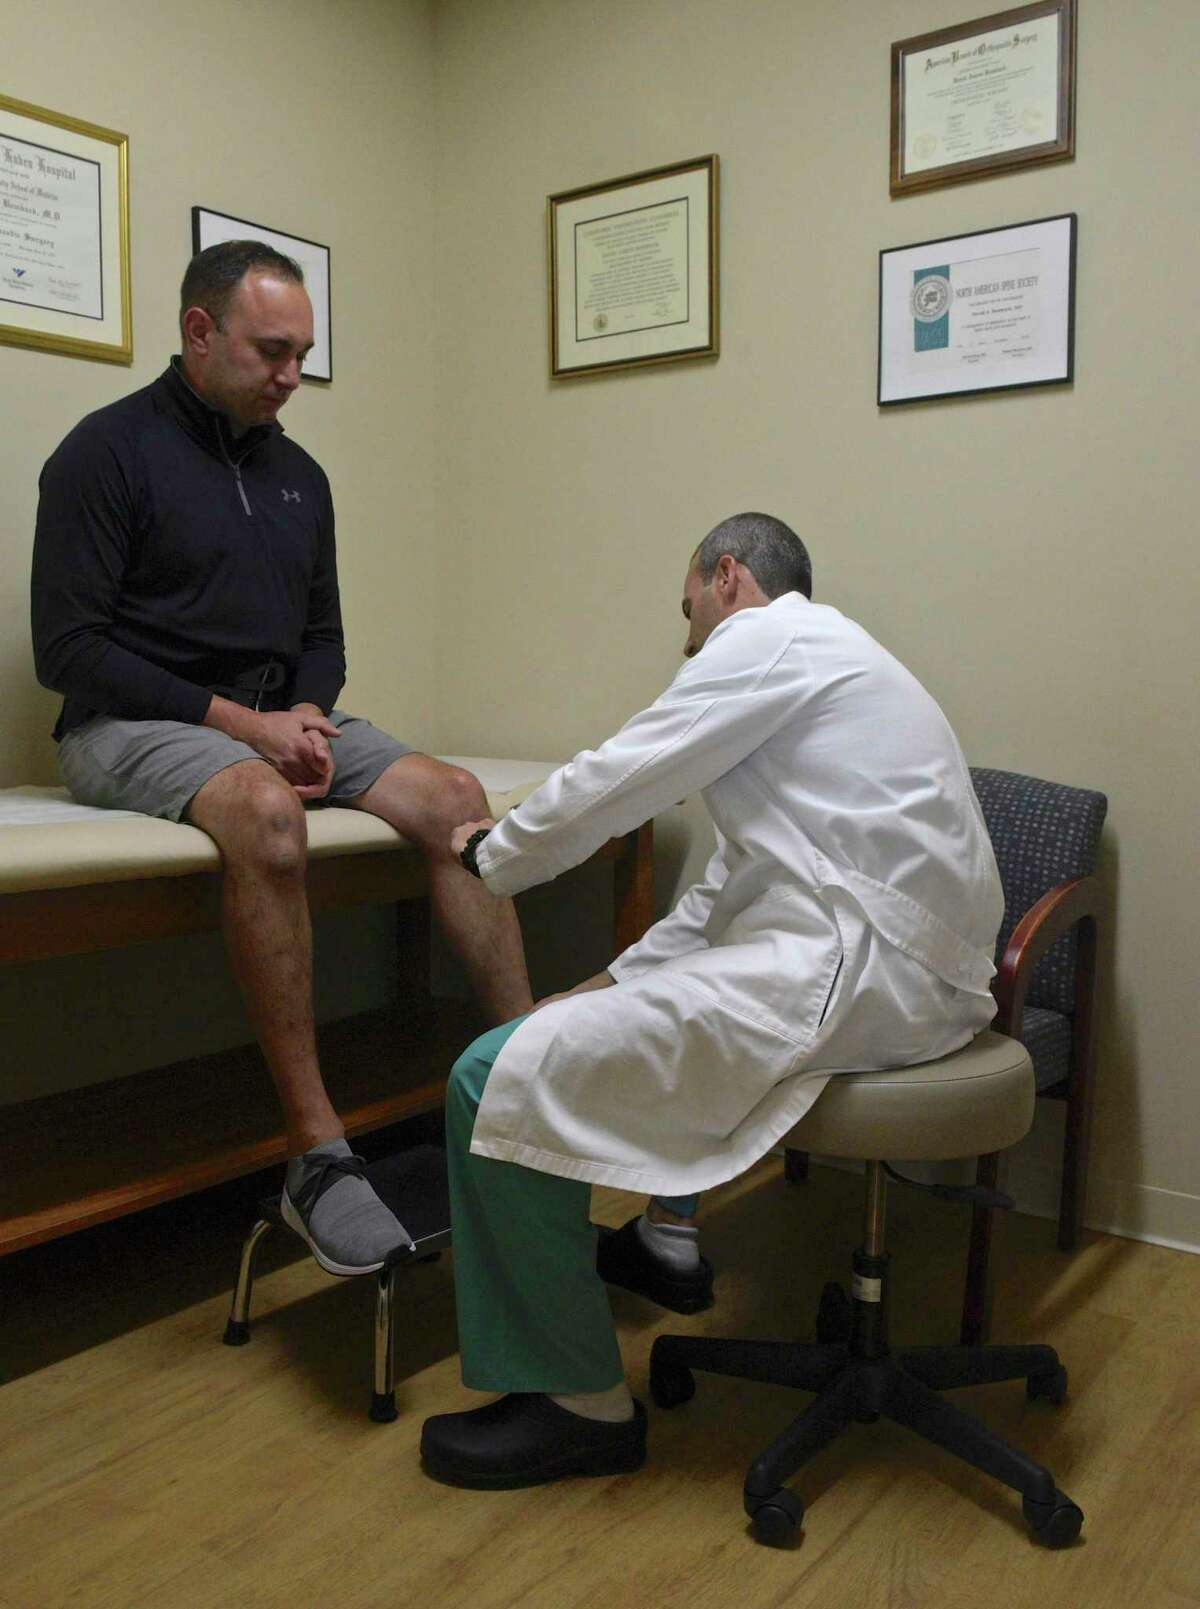 Joe Esposito talks with Dr David Bomback during a follow-up to his back surgery. Esposito recently had ground breaking back surgery, the first one done in the state, by Dr Bomback. Friday, July 9, 2021, Danbury, Conn.